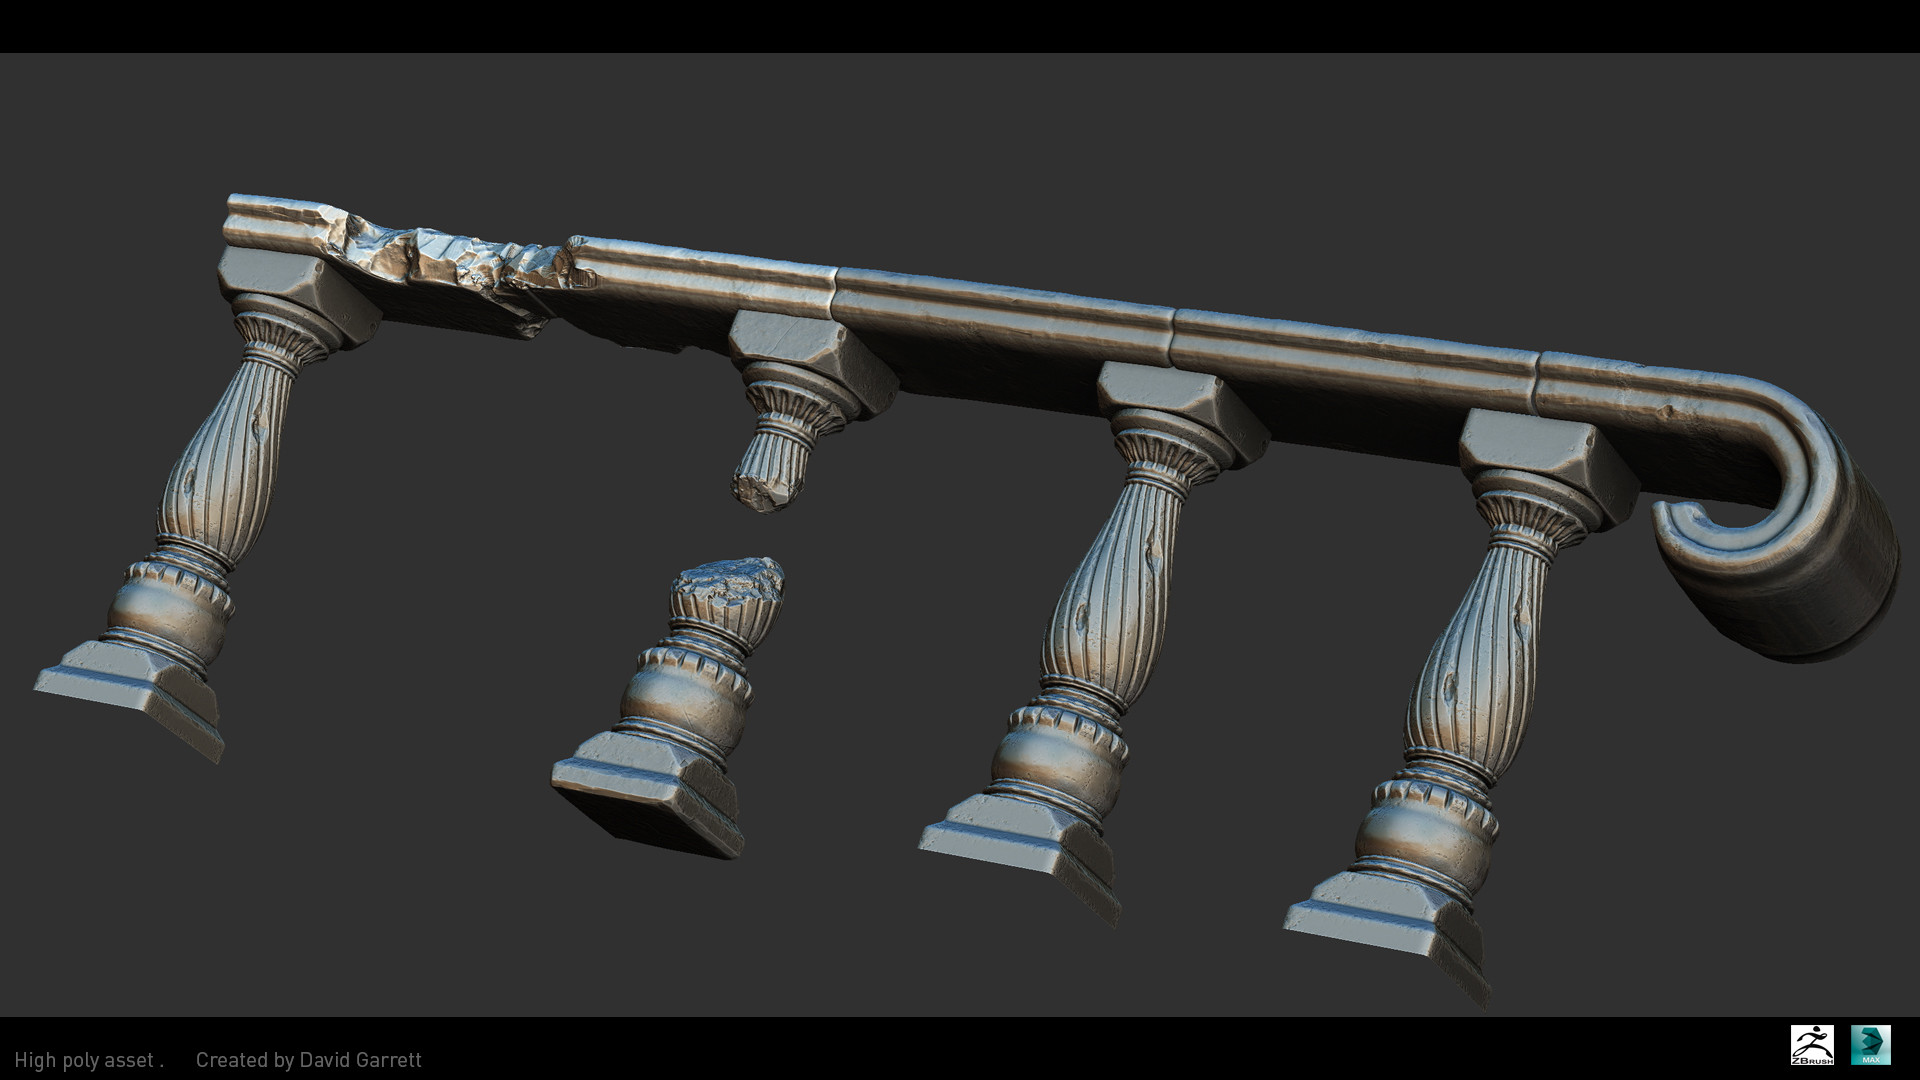 David garrett n3094311 high poly shot railing